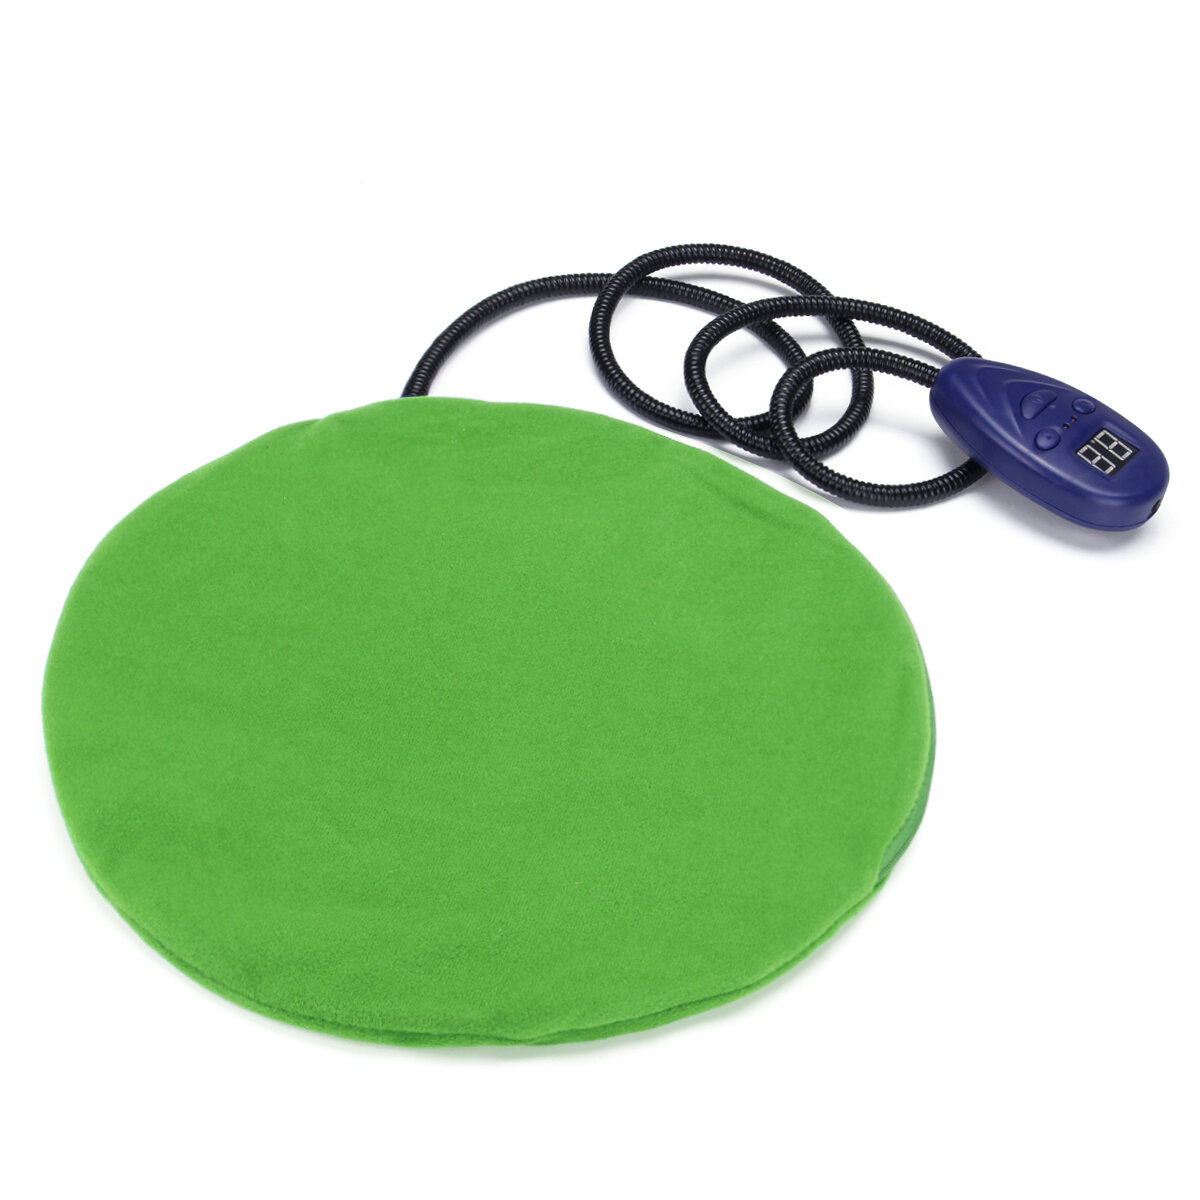 Bed Heater 12v Pet Dog Heating Heated Pad Mat Waterproof Electric Pad Heater Thermal Protection Bed Eu Plug